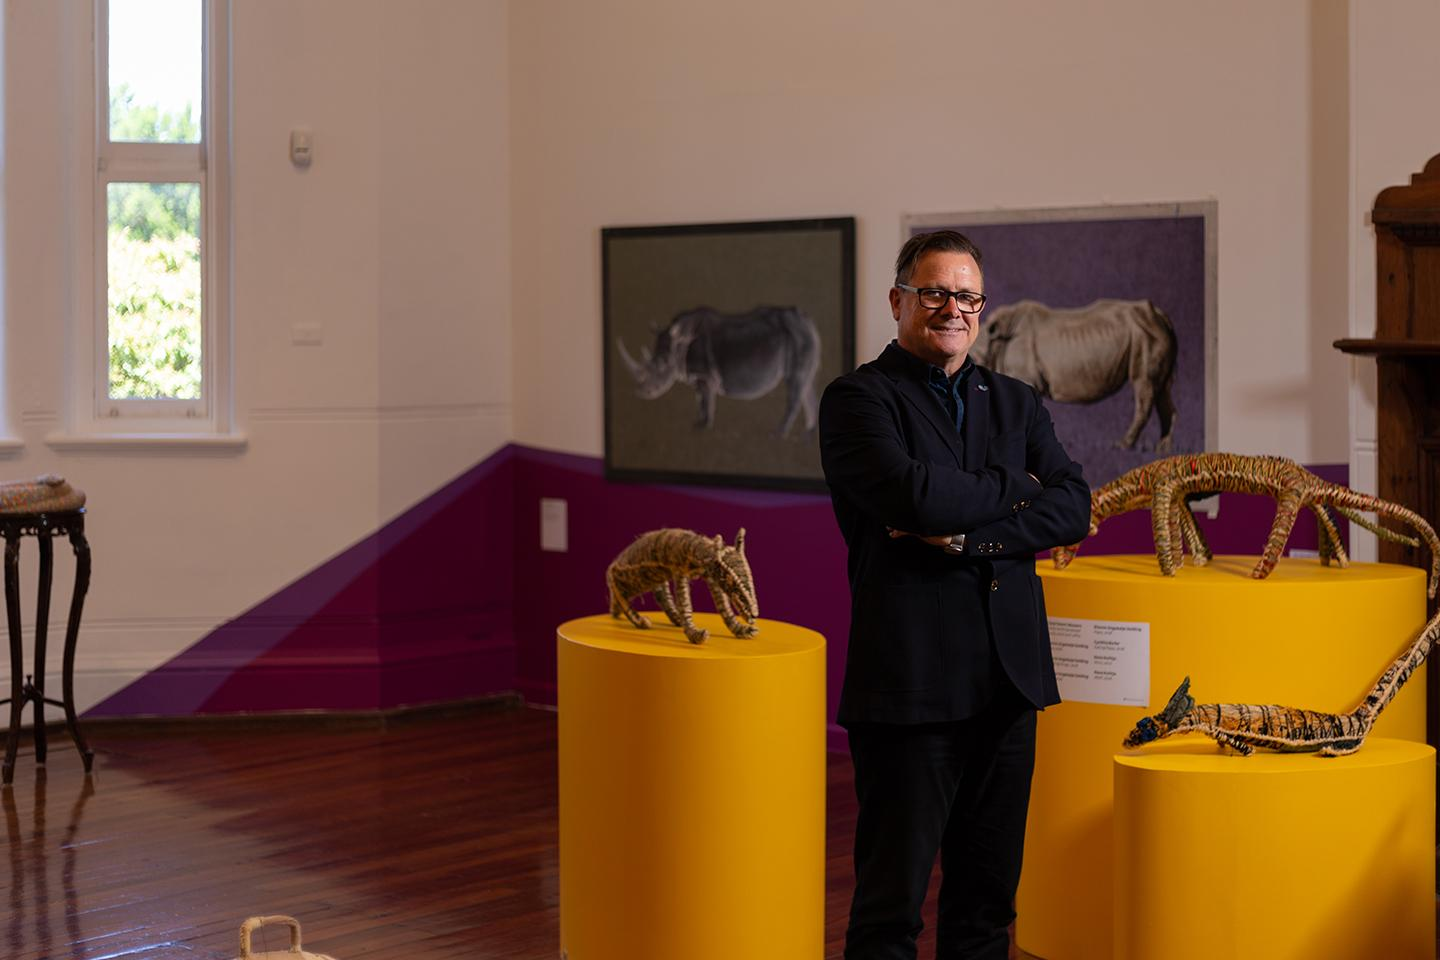 Contemporary music a catch for Freo Arts